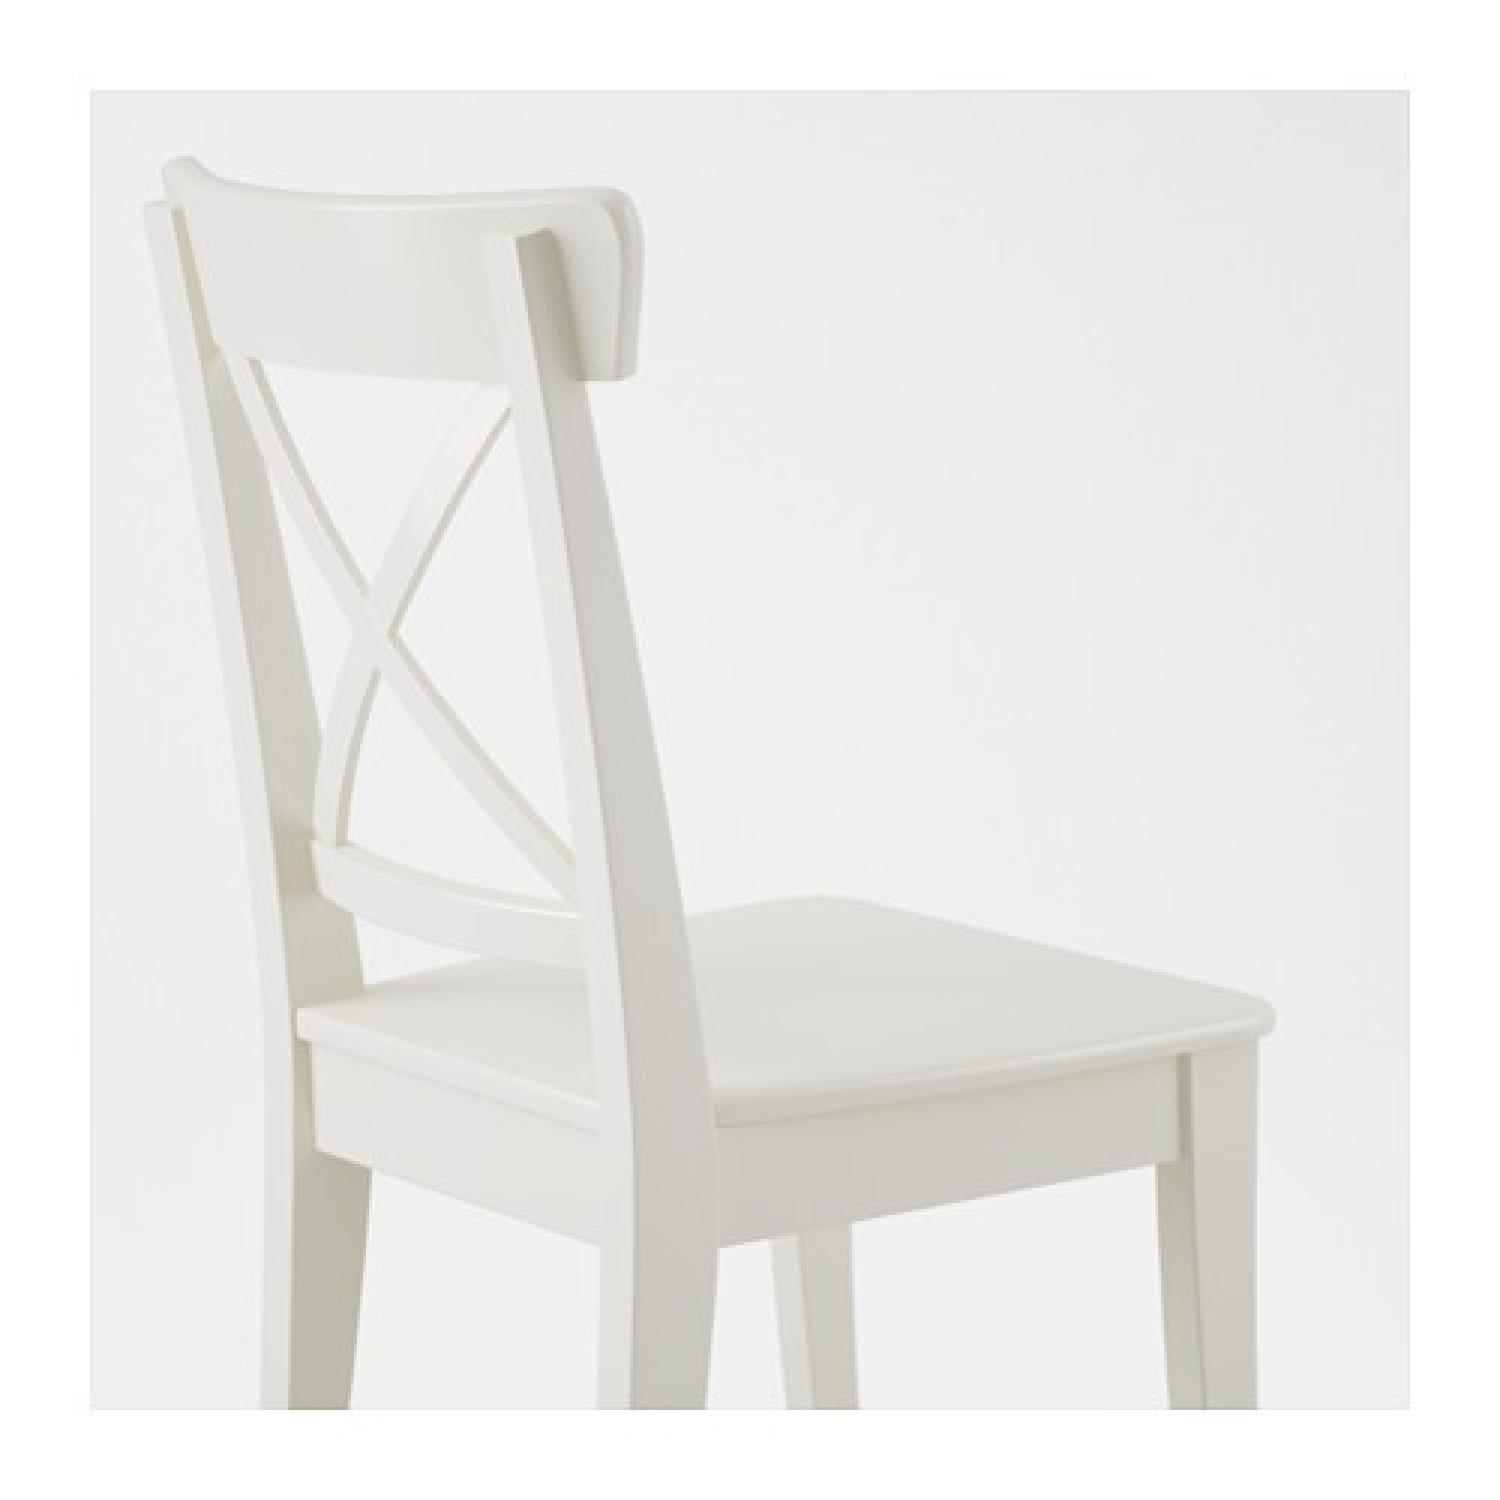 Ikea White Dining Chair - image-2